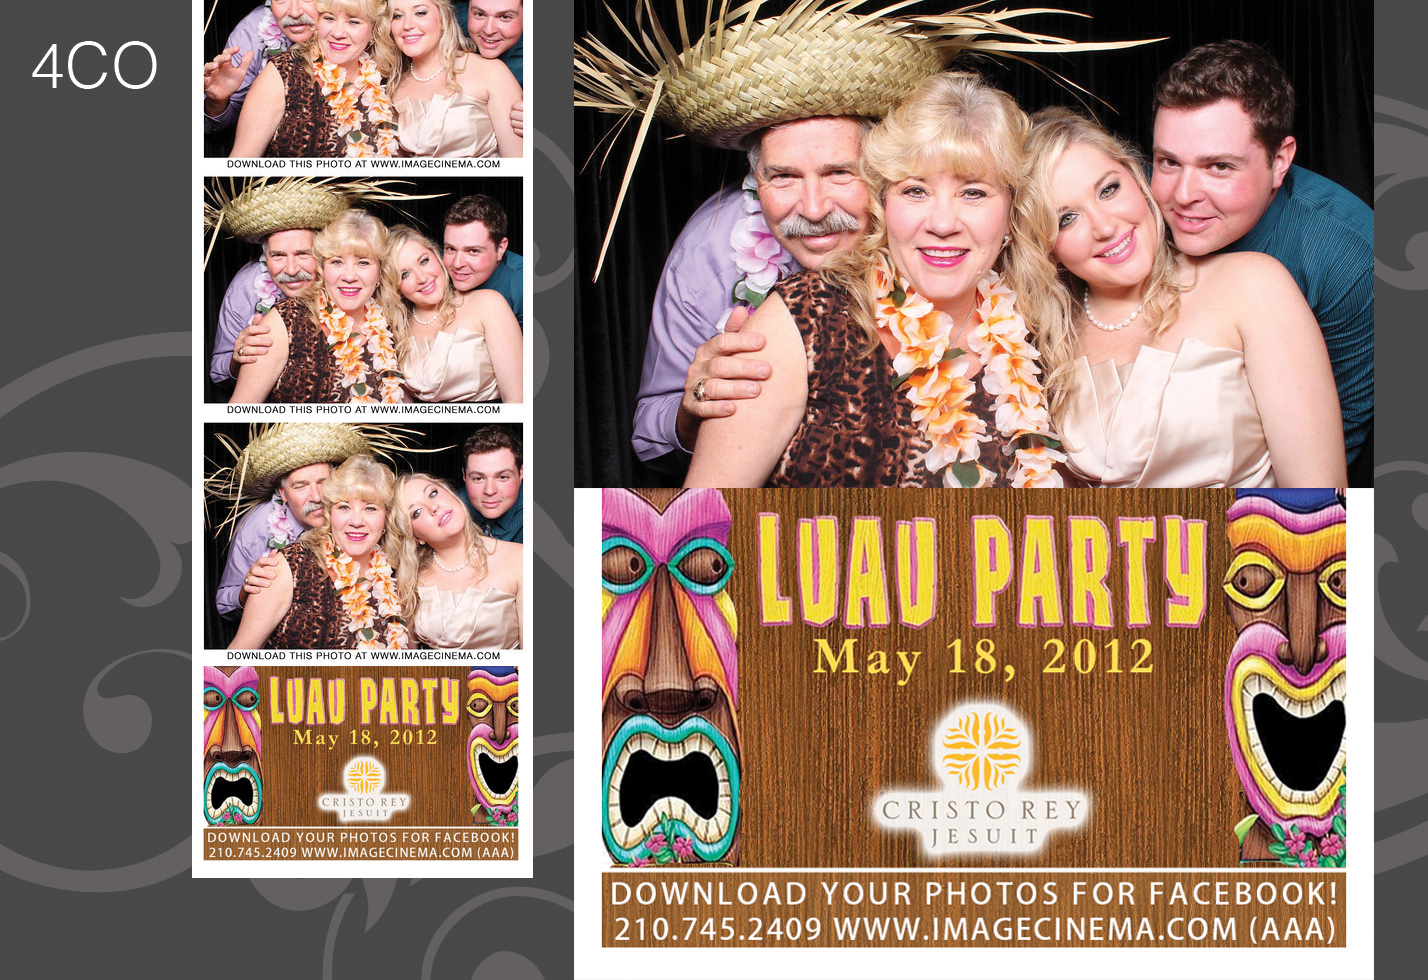 Photo Booth 4CO